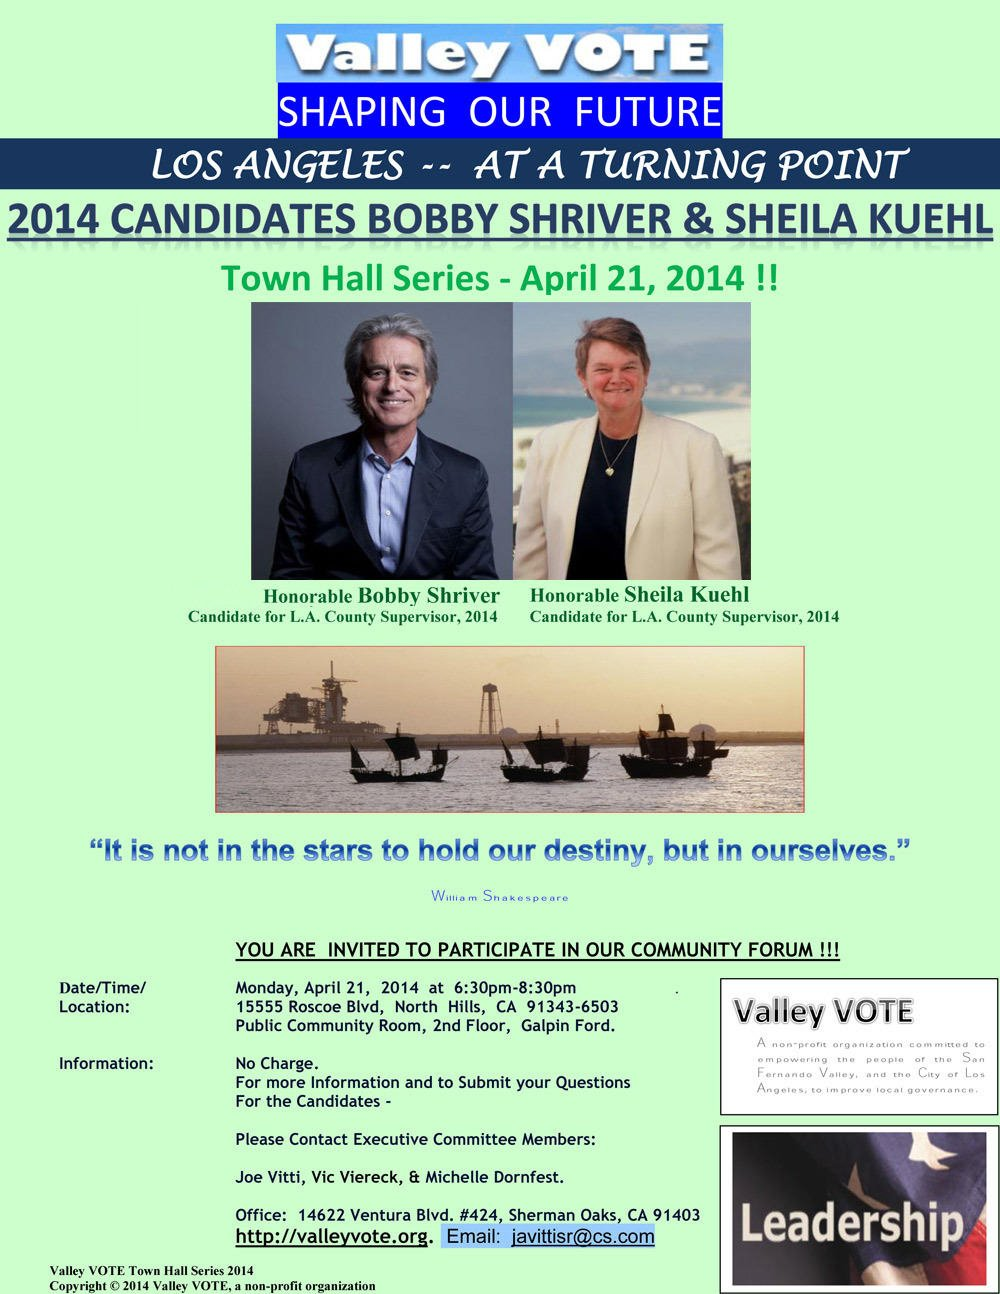 Special--Invitation---To-Meet-&-Greet---Candidates,-Bobby-Shriver-&-Sheila-Kuehl-----April-21-2014---Valley-Vote-